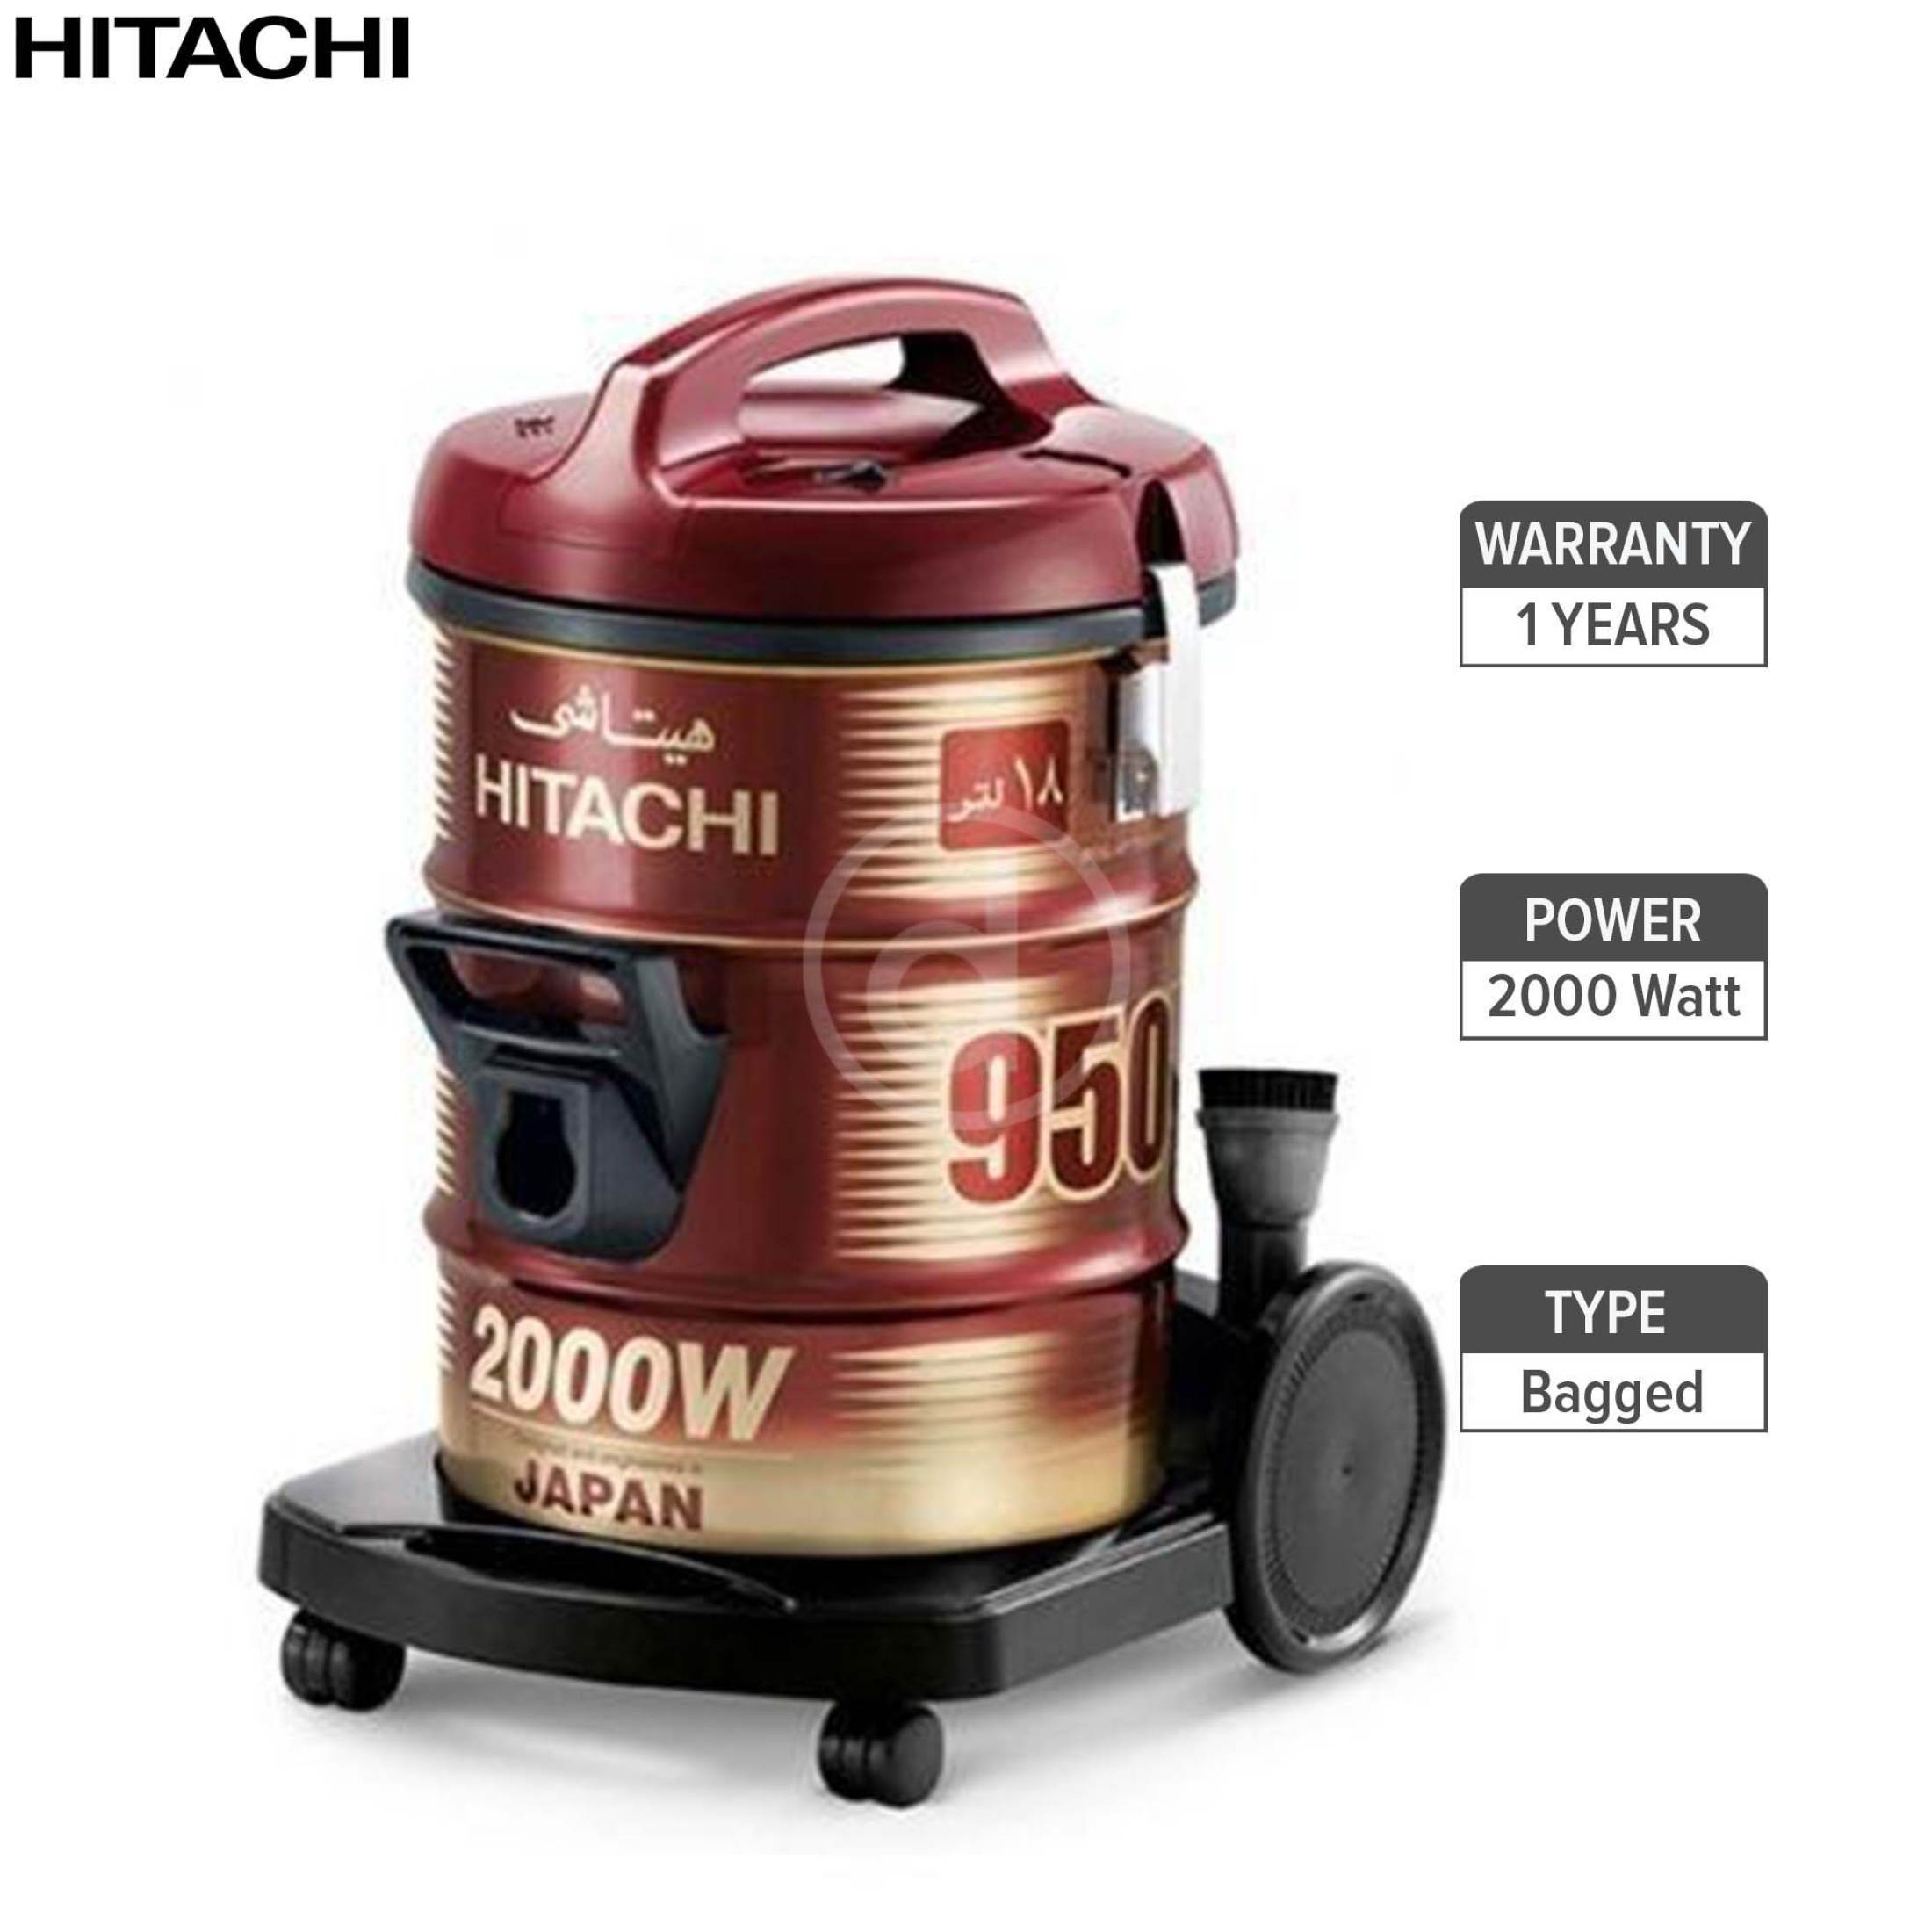 Hitachi 2000W Bag Type Vacuum Cleaner Red Cv950(Wr)